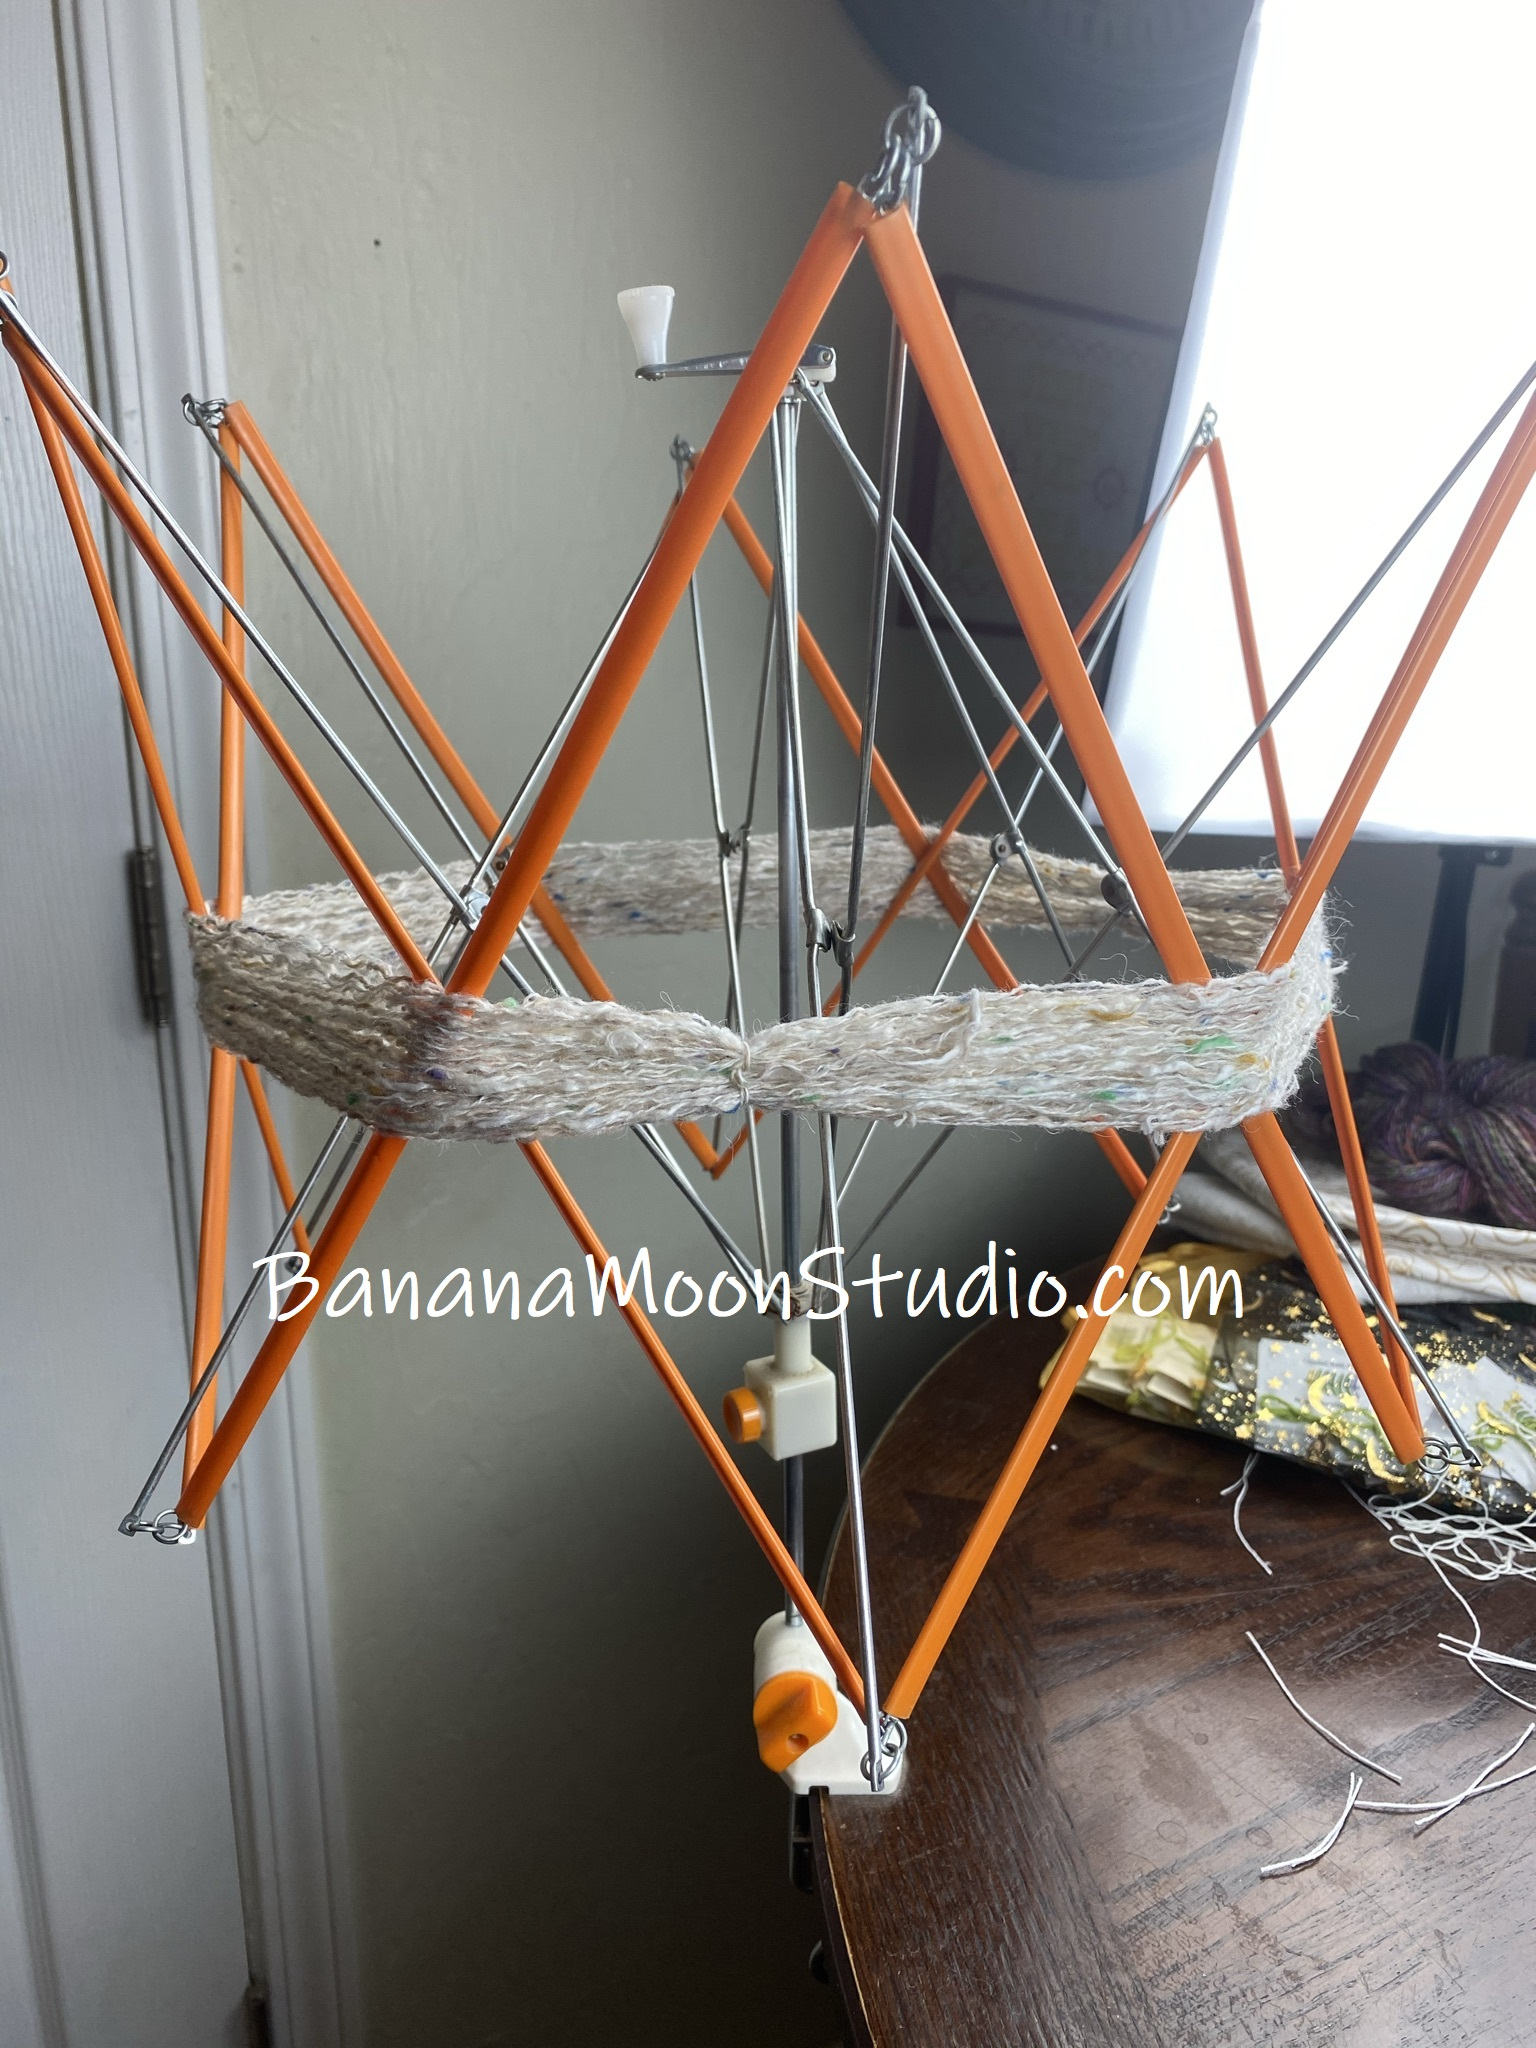 Use a yarn swift or other object to wrap your yarn around, how to block acrylic yarn, photo tutorial from Banana Moon Studio